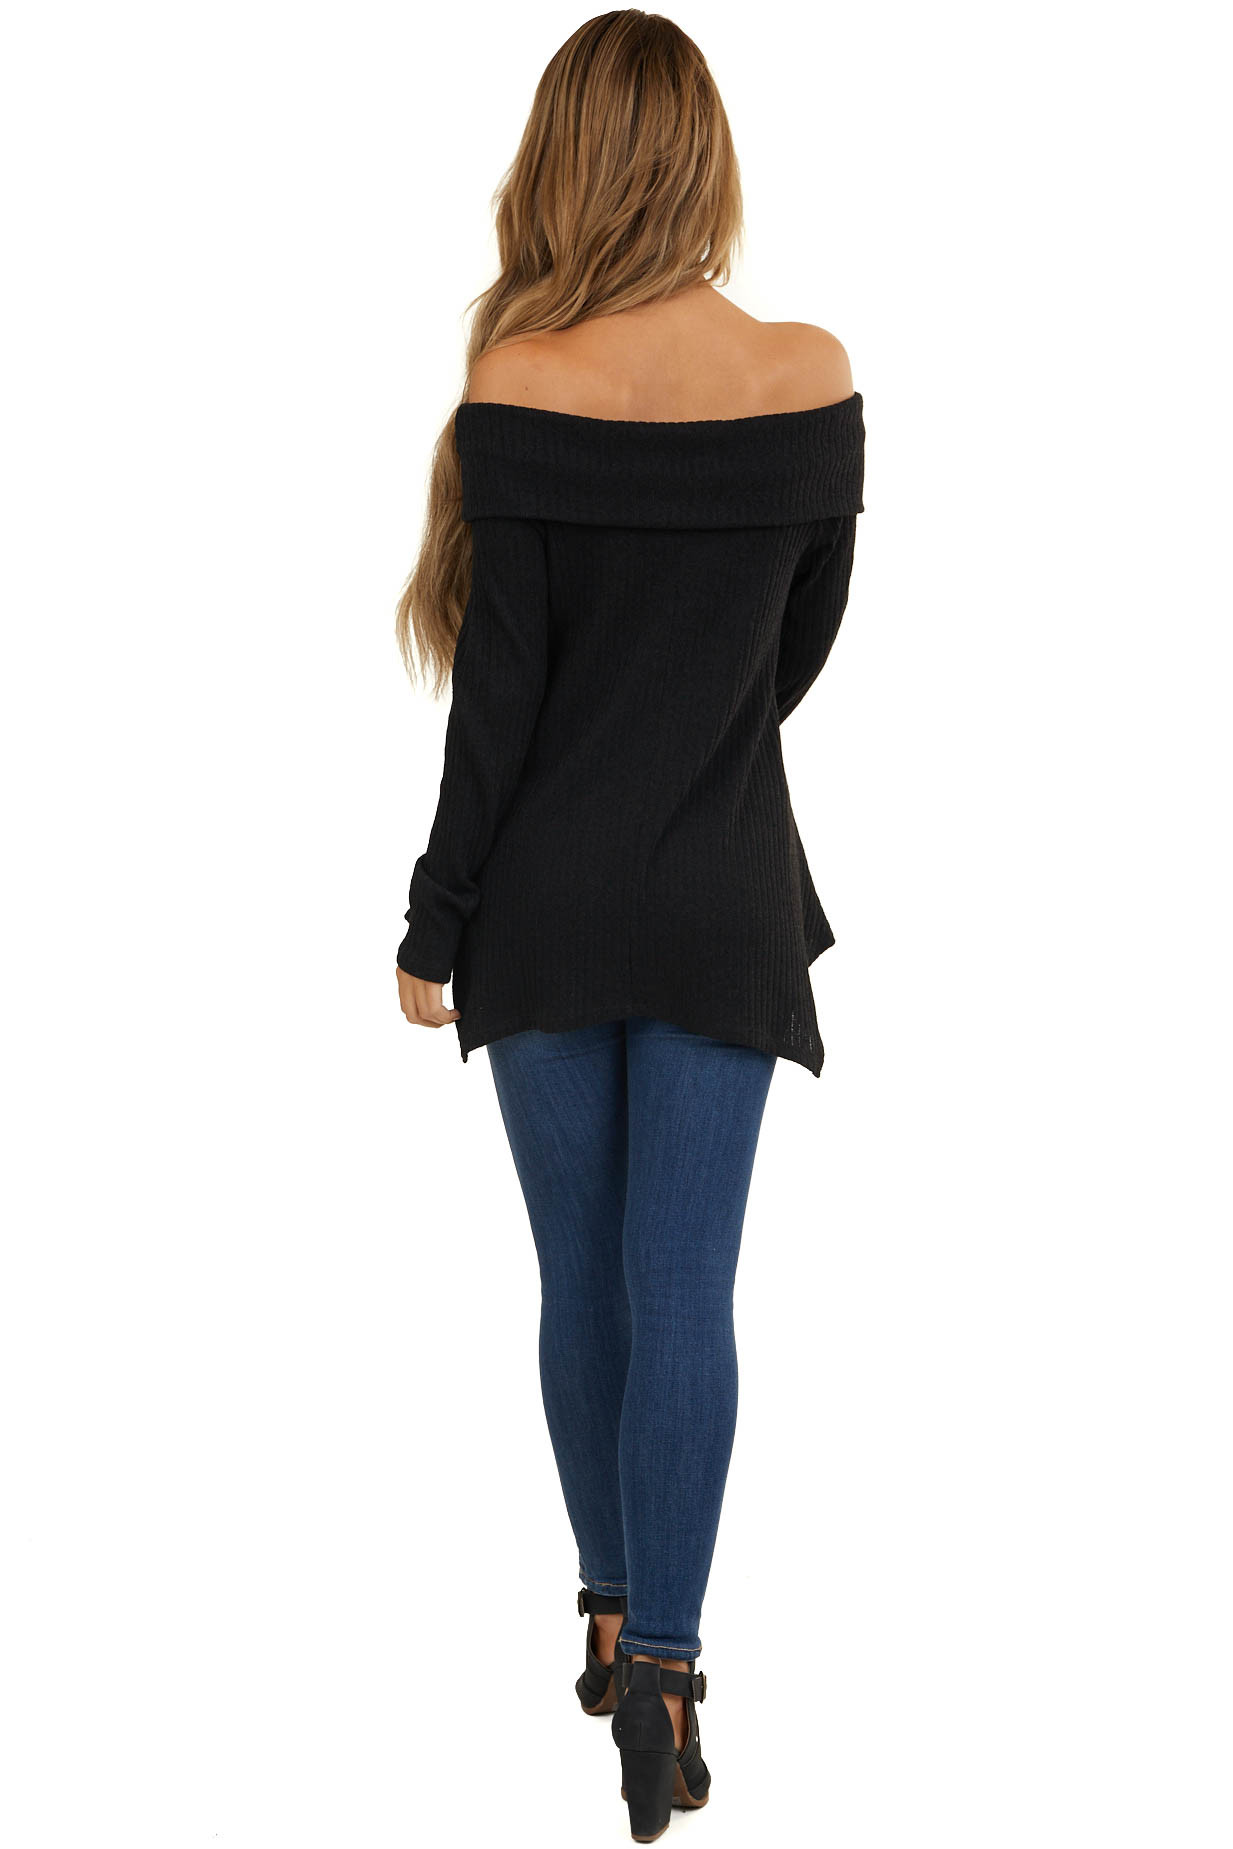 Black Folded Off the Shoulder Ribbed Top with Long Sleeves